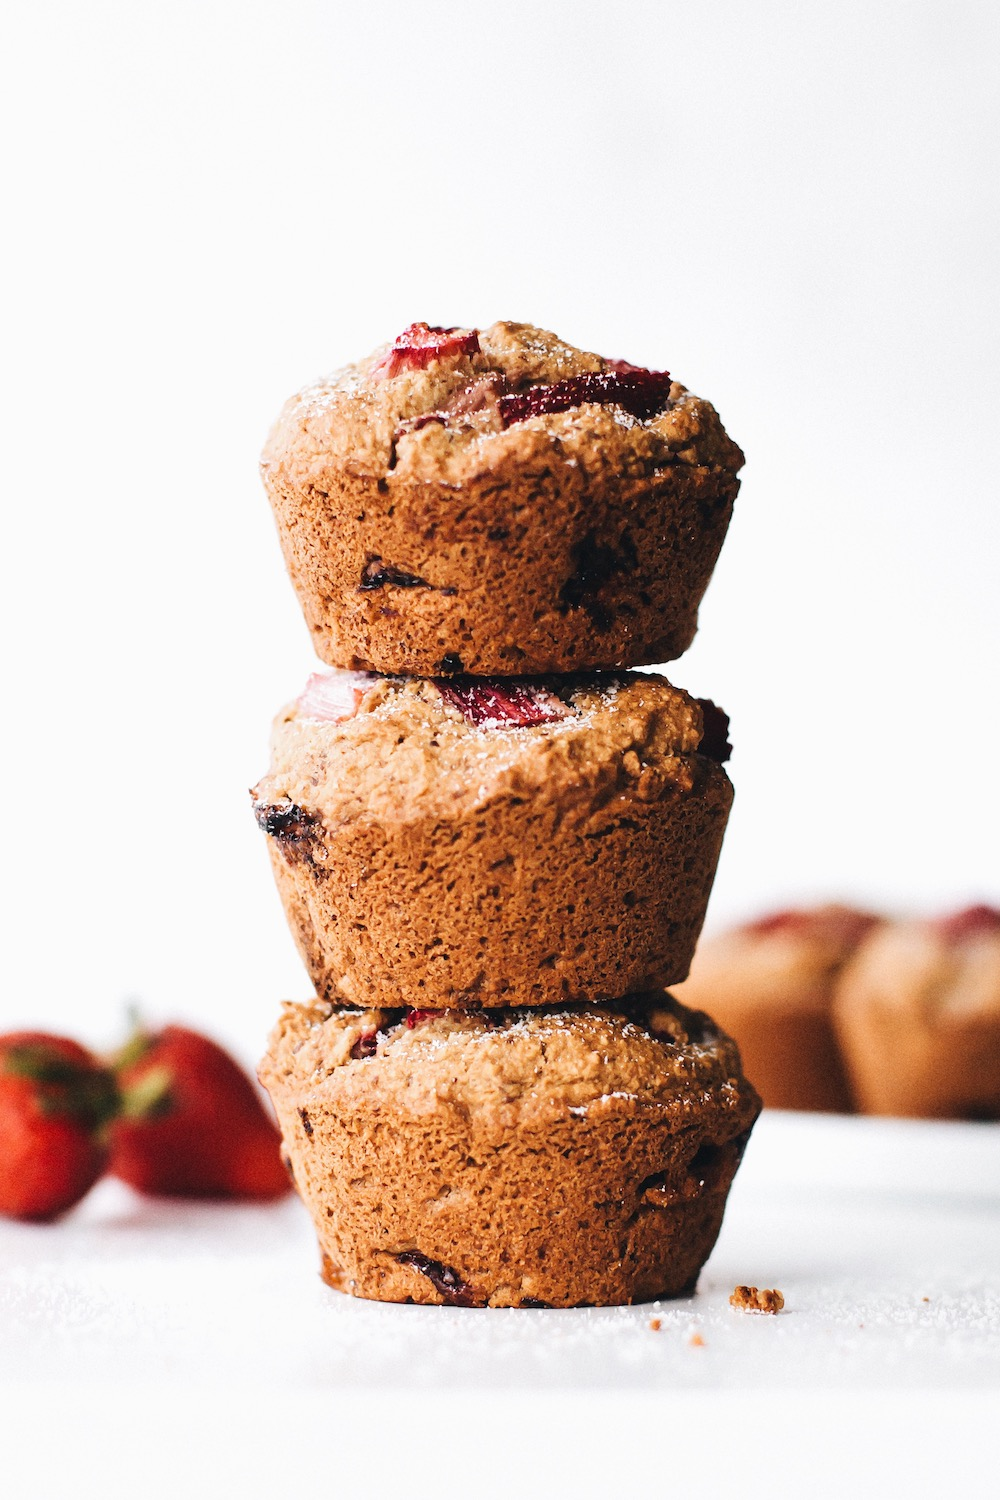 Strawberry Rhubarb Muffins (vegan + gluten-free)